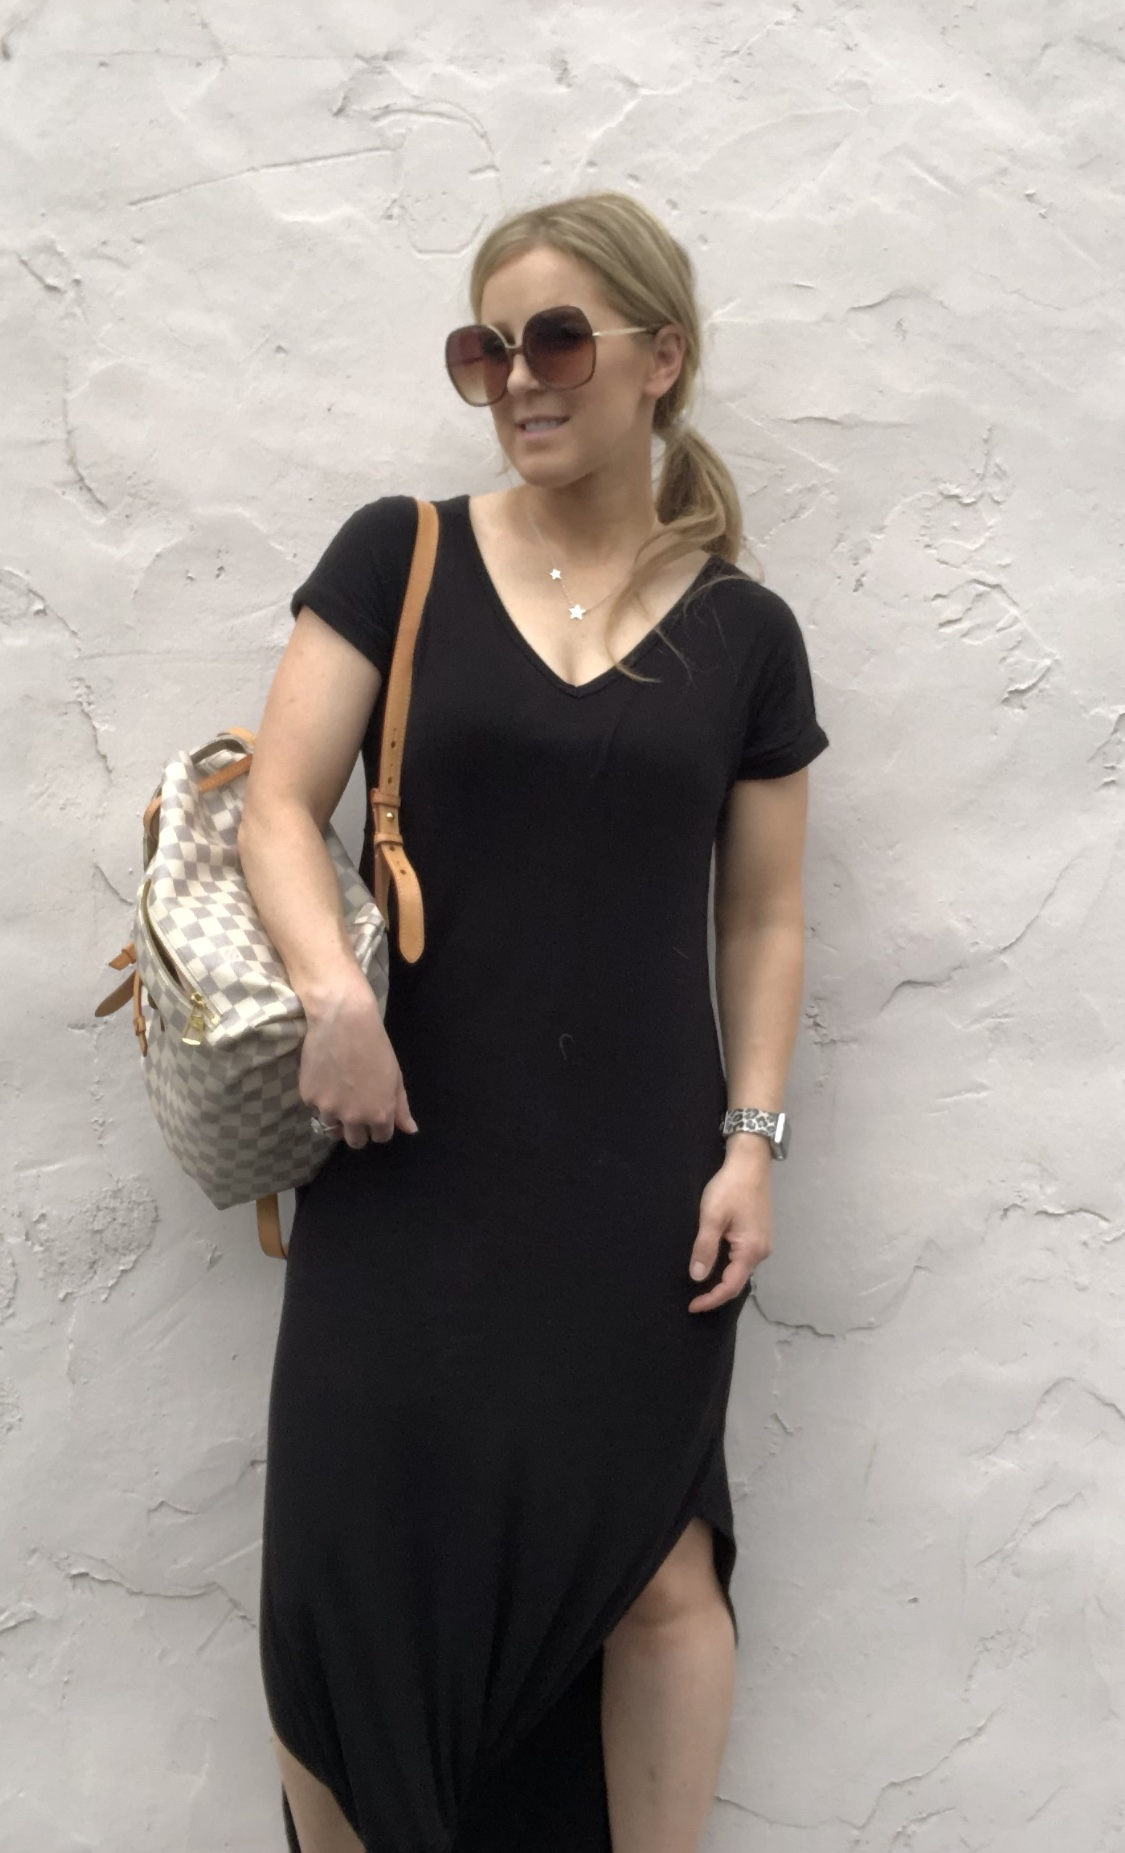 The oversized sunnies and the maxi dress! I always tie the front part of the bottom!